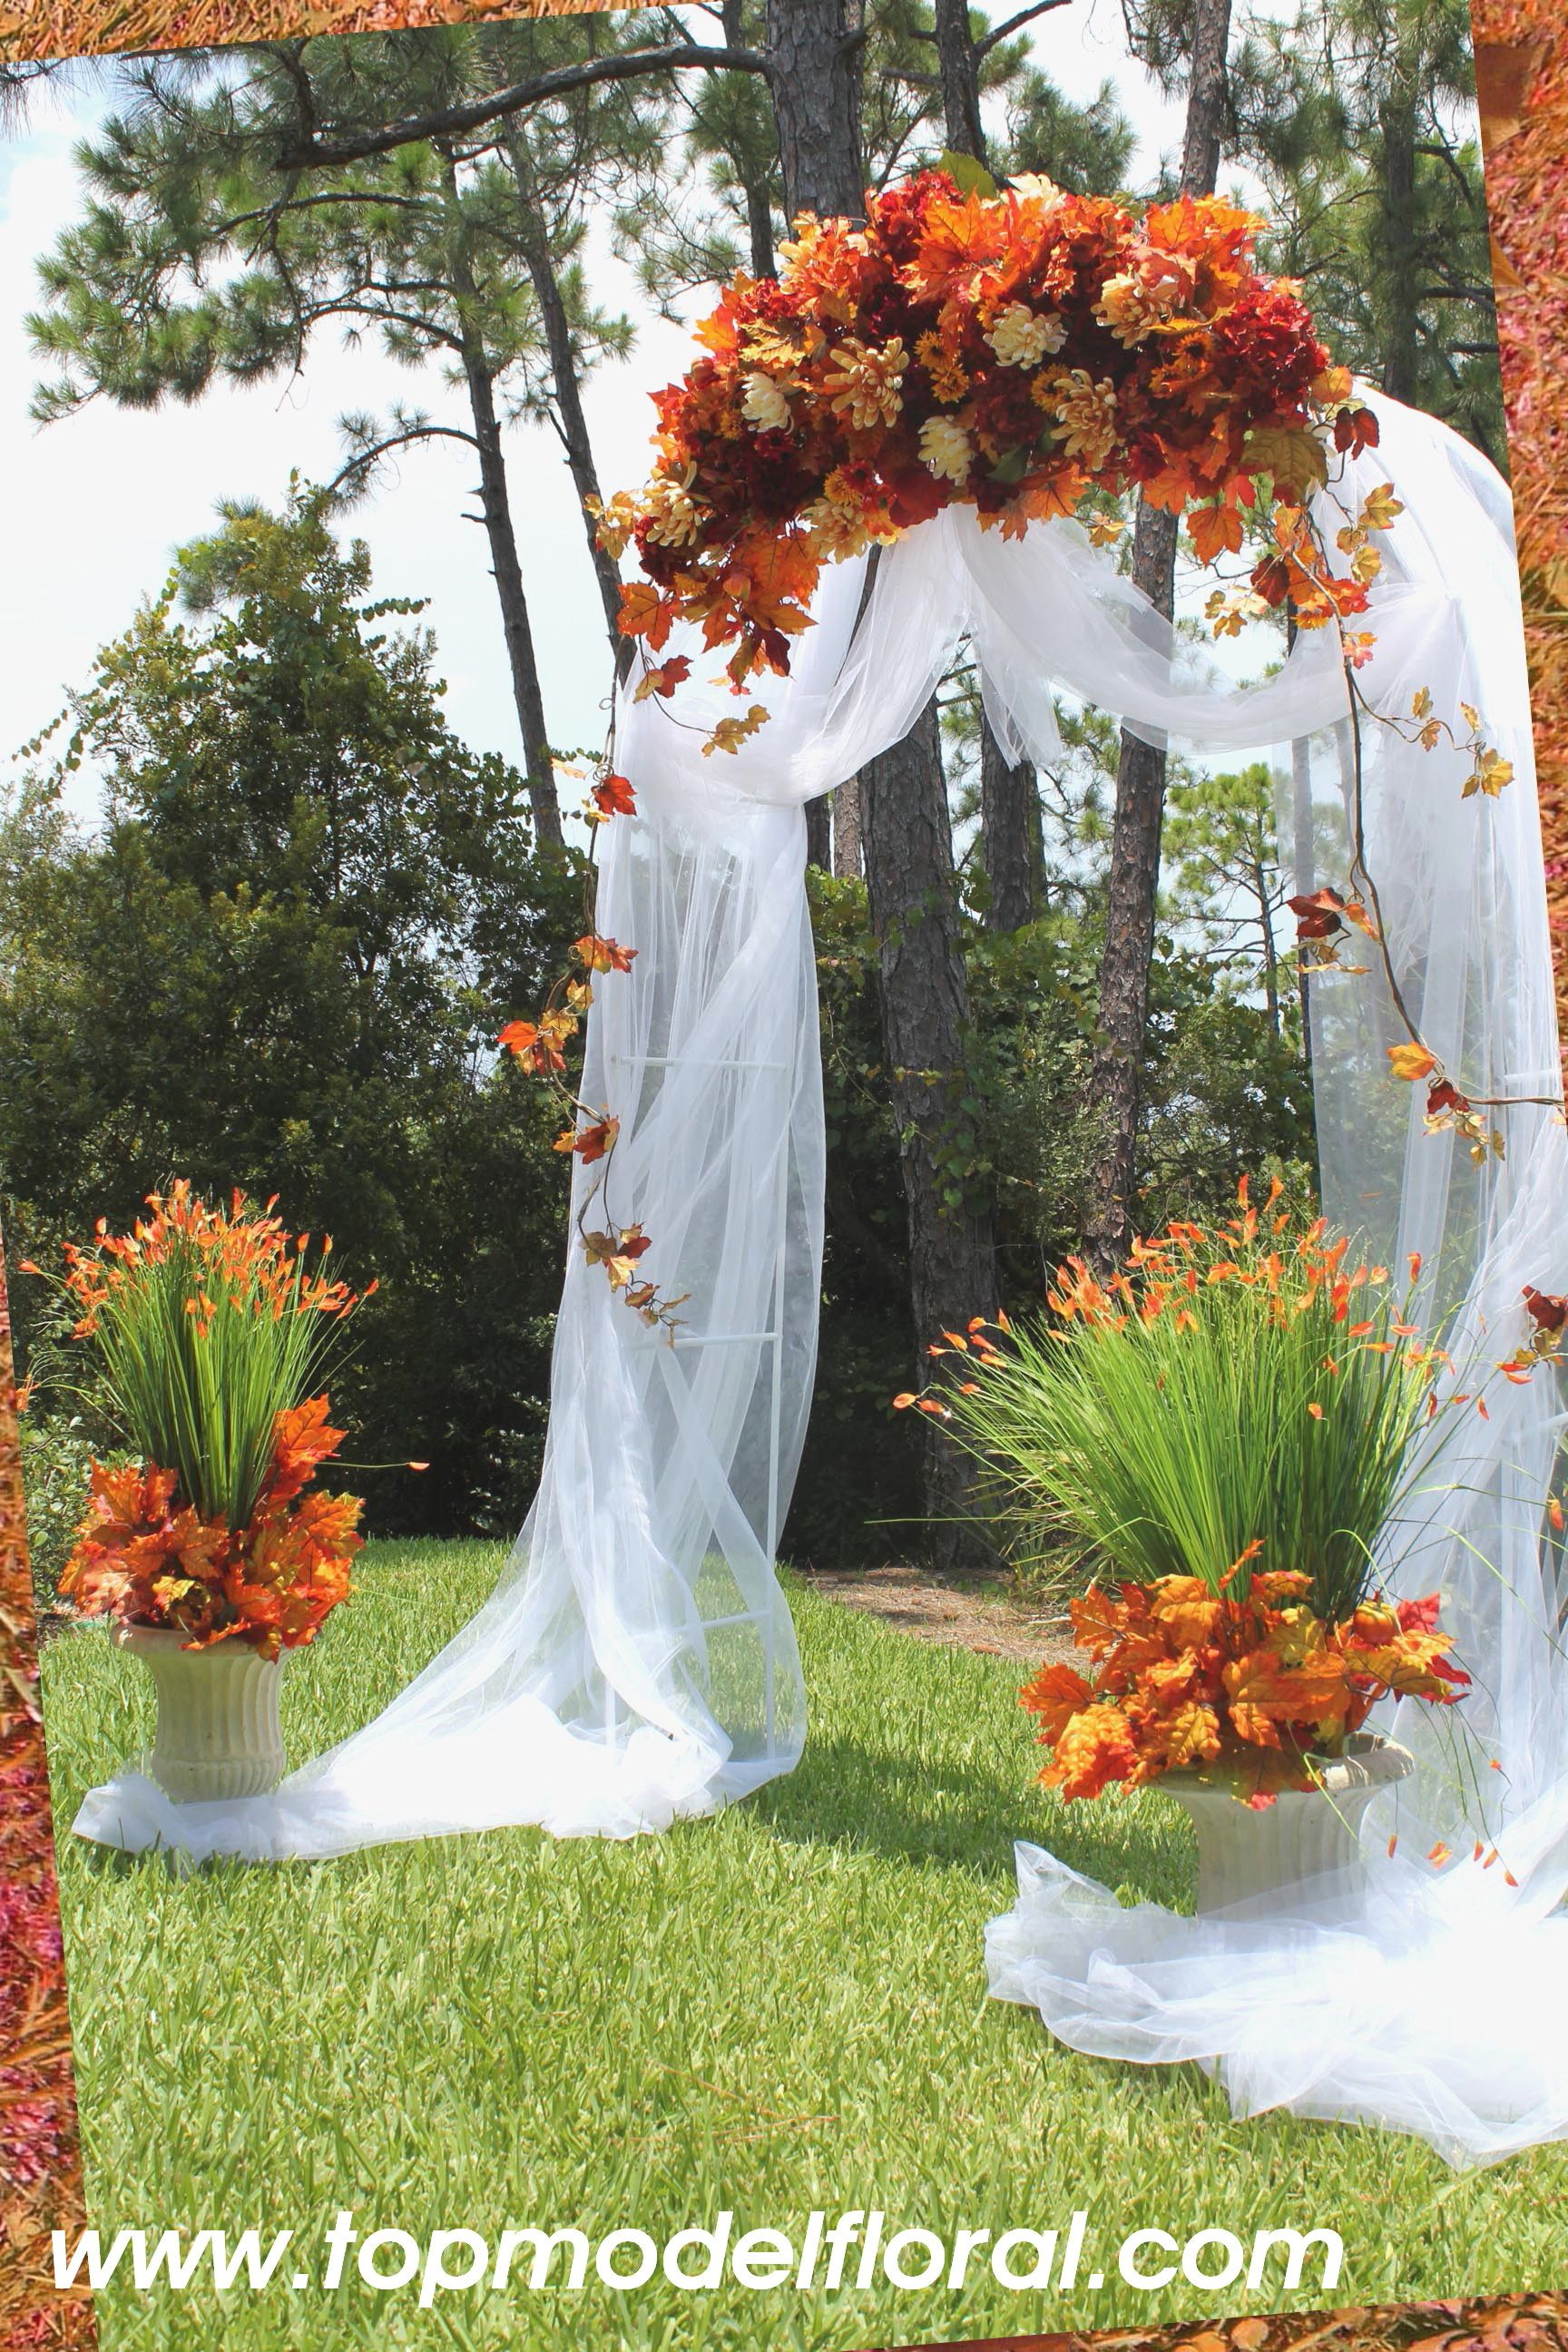 Wedding Arch Decorations Simple Ways To Decorate Wedding Arch Fall Wedding Arch